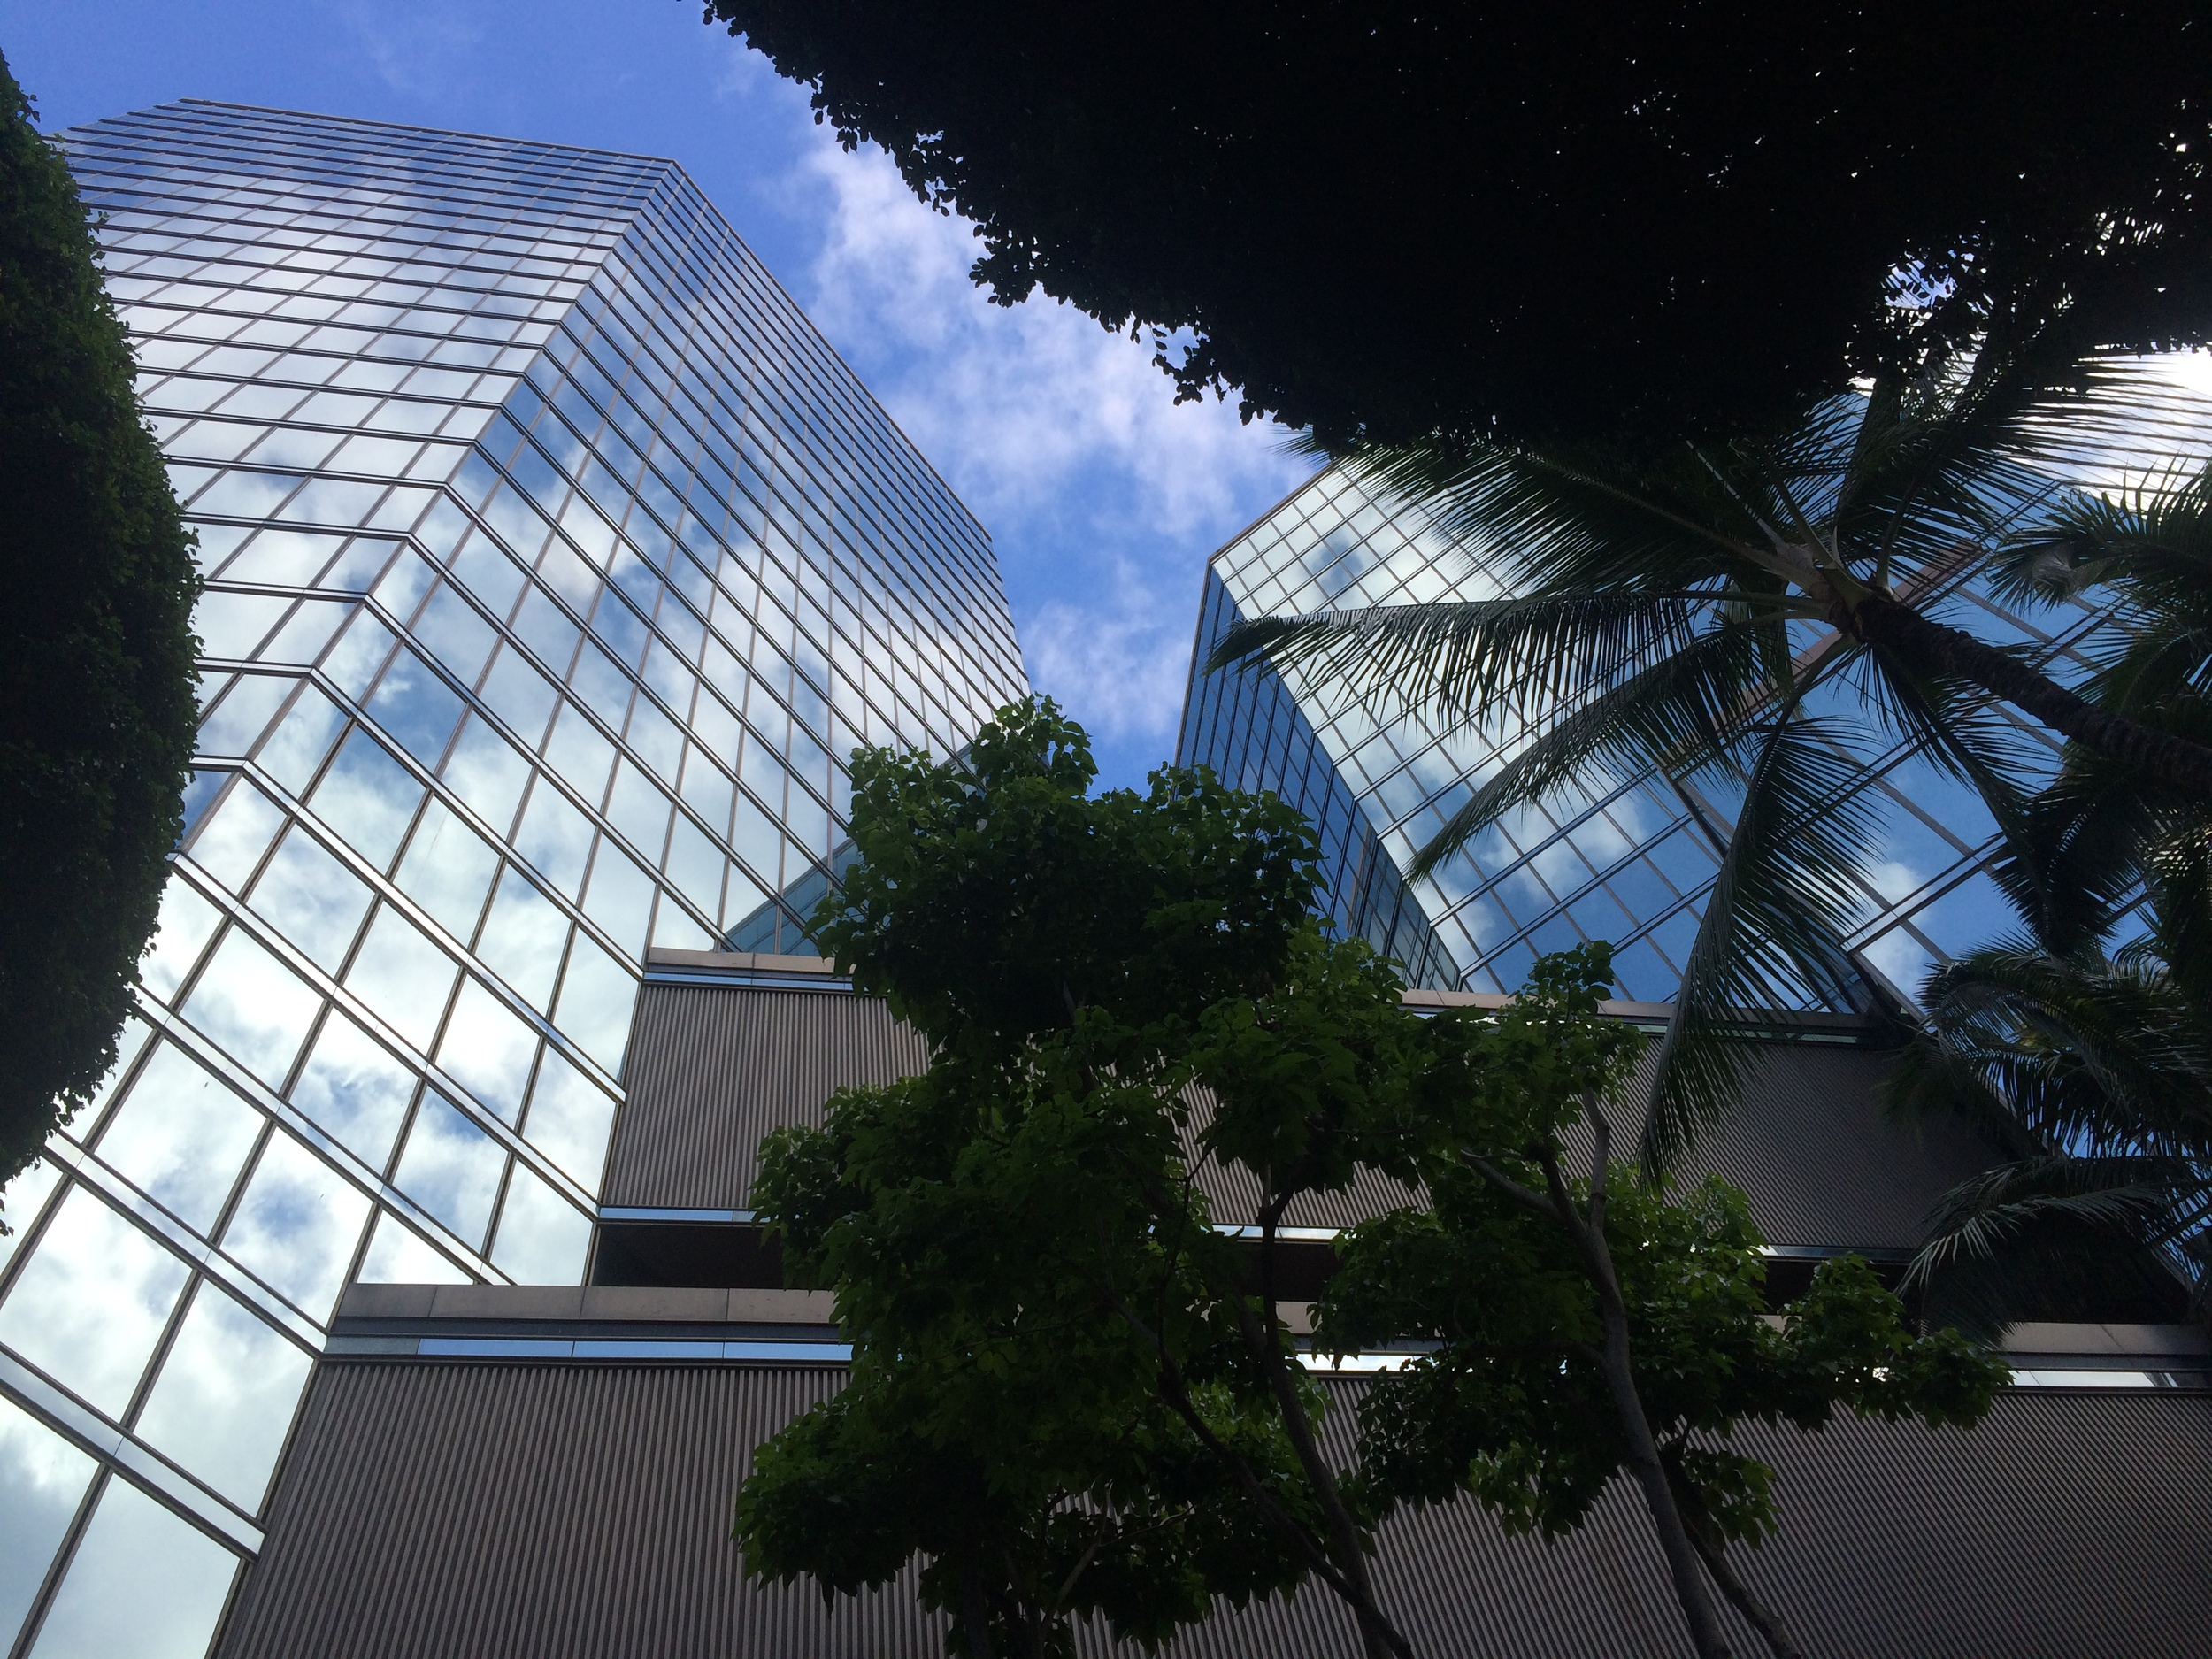 I work up there! On the 15th floor in downtown Honolulu.